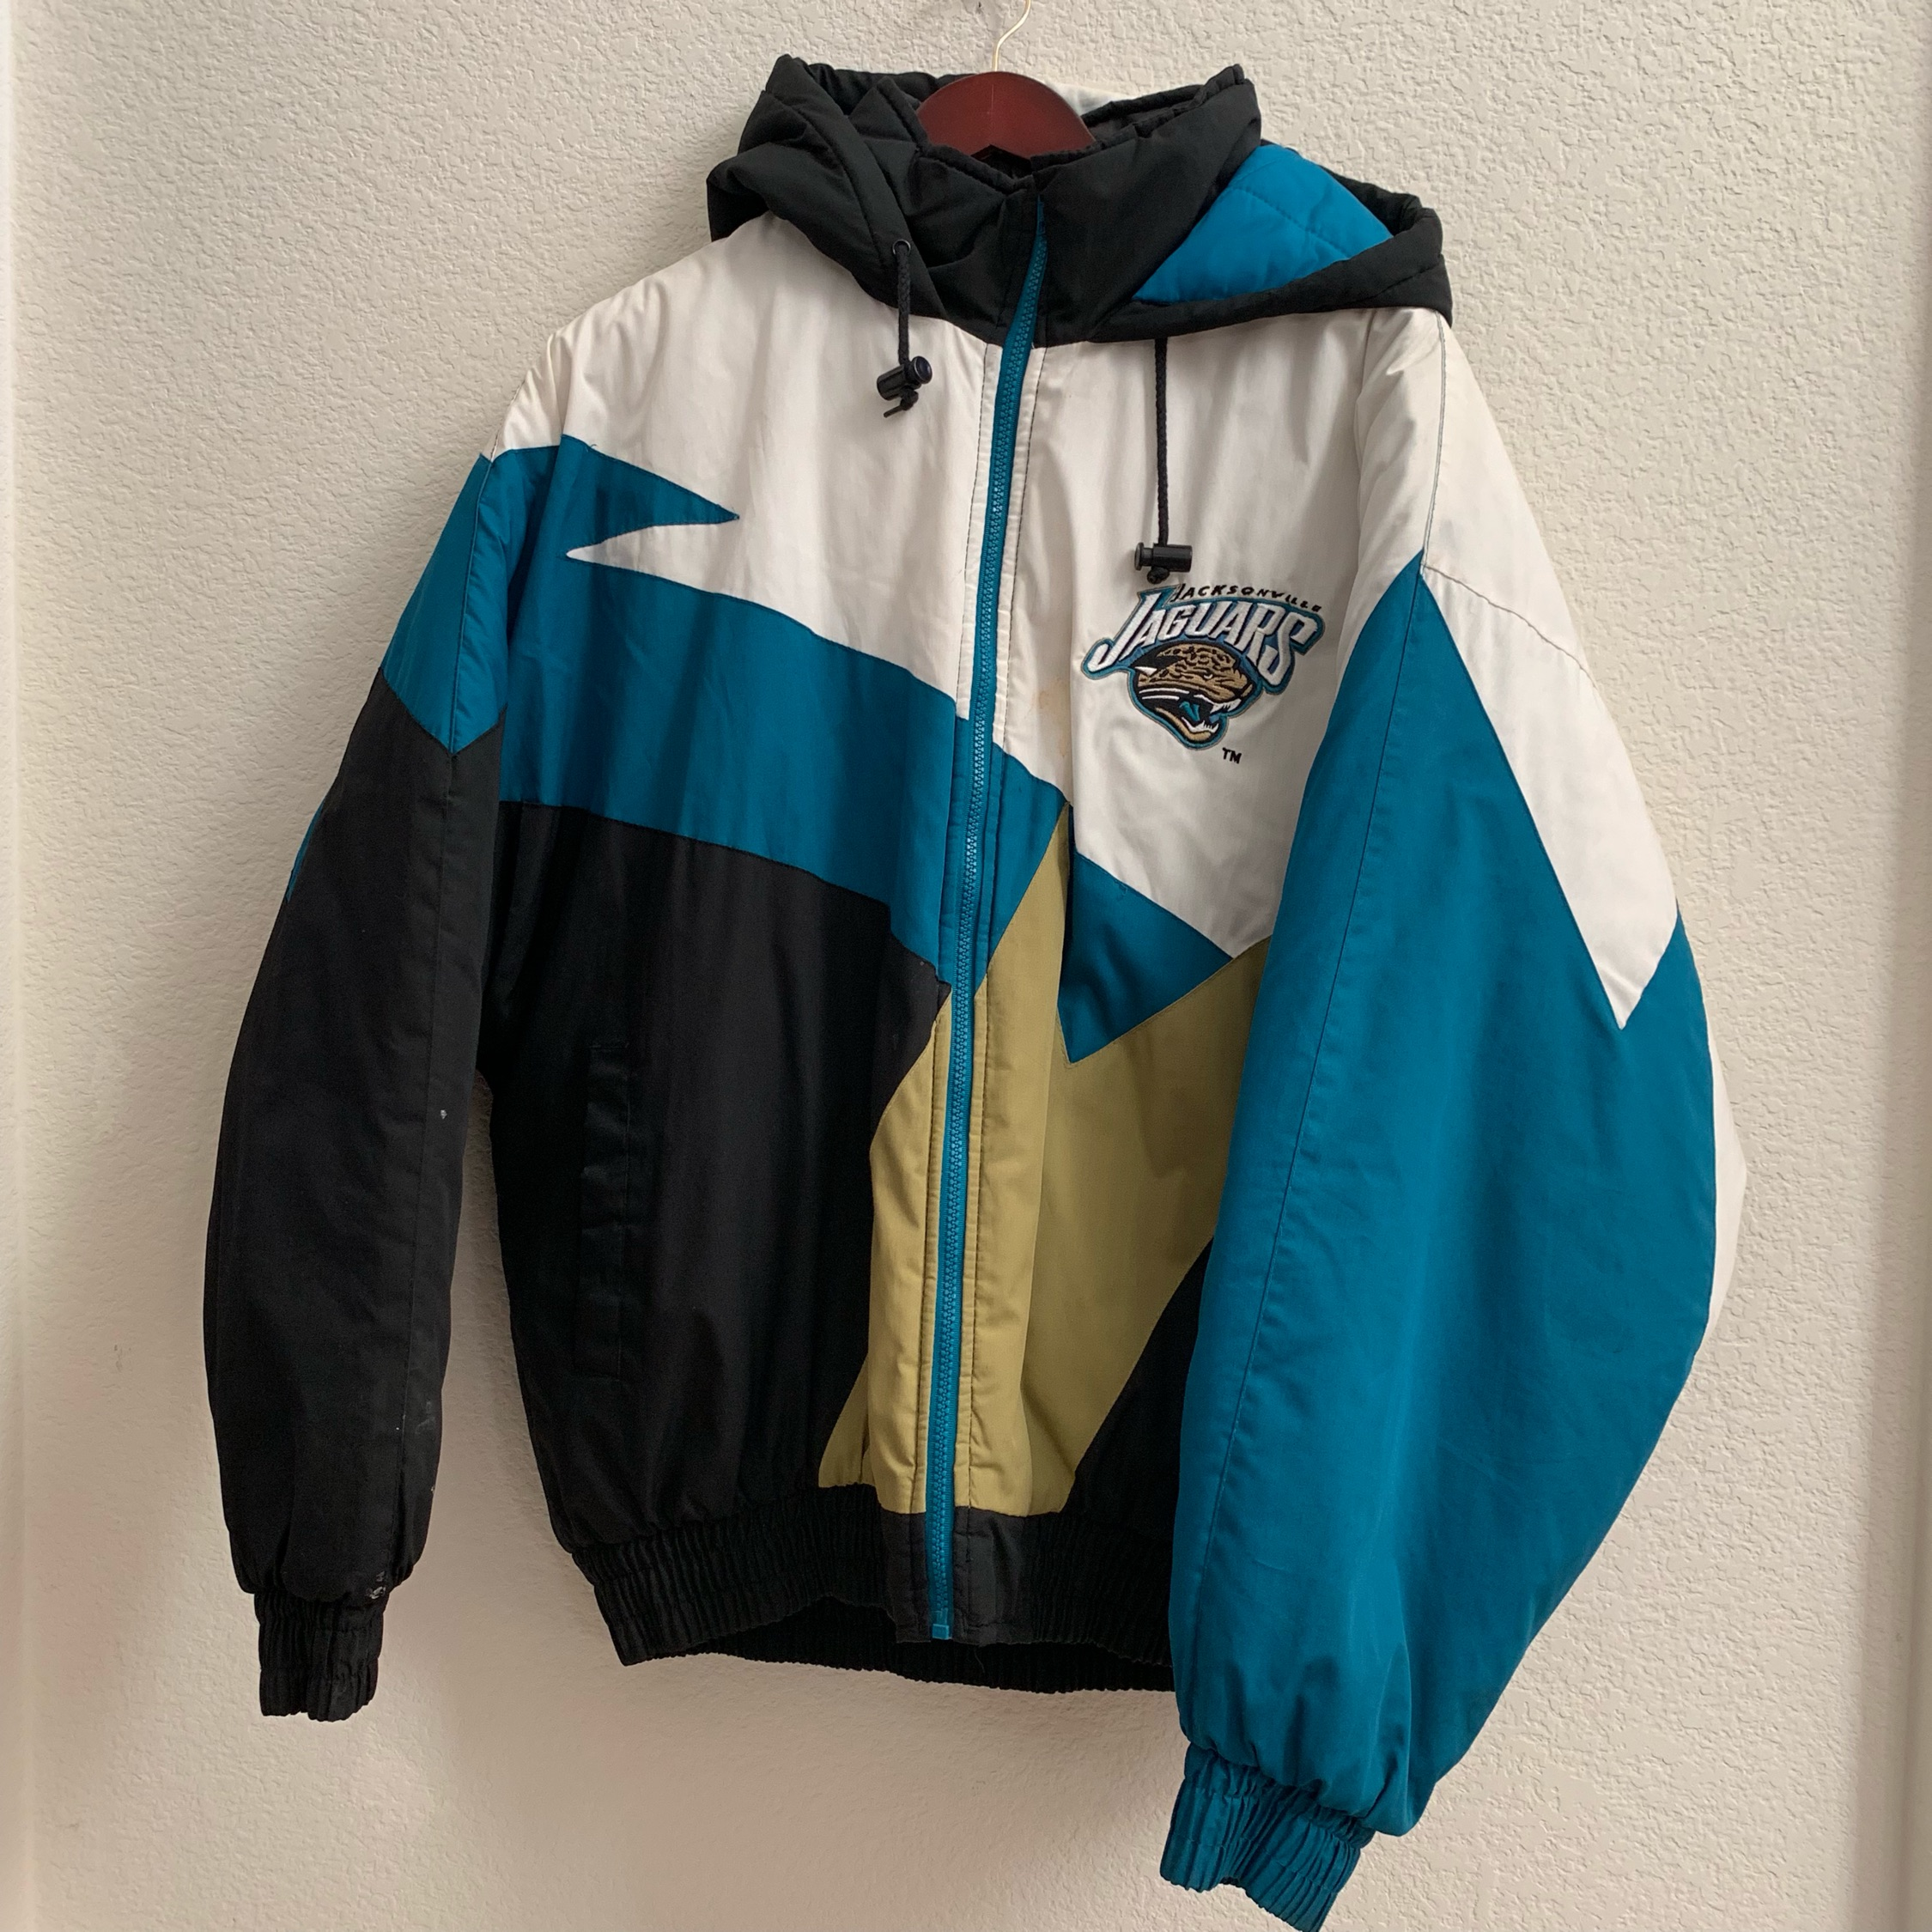 super cute 86fee 4cae1 Nfl Gameday Jacksonville Jaguars Puffer Jacket